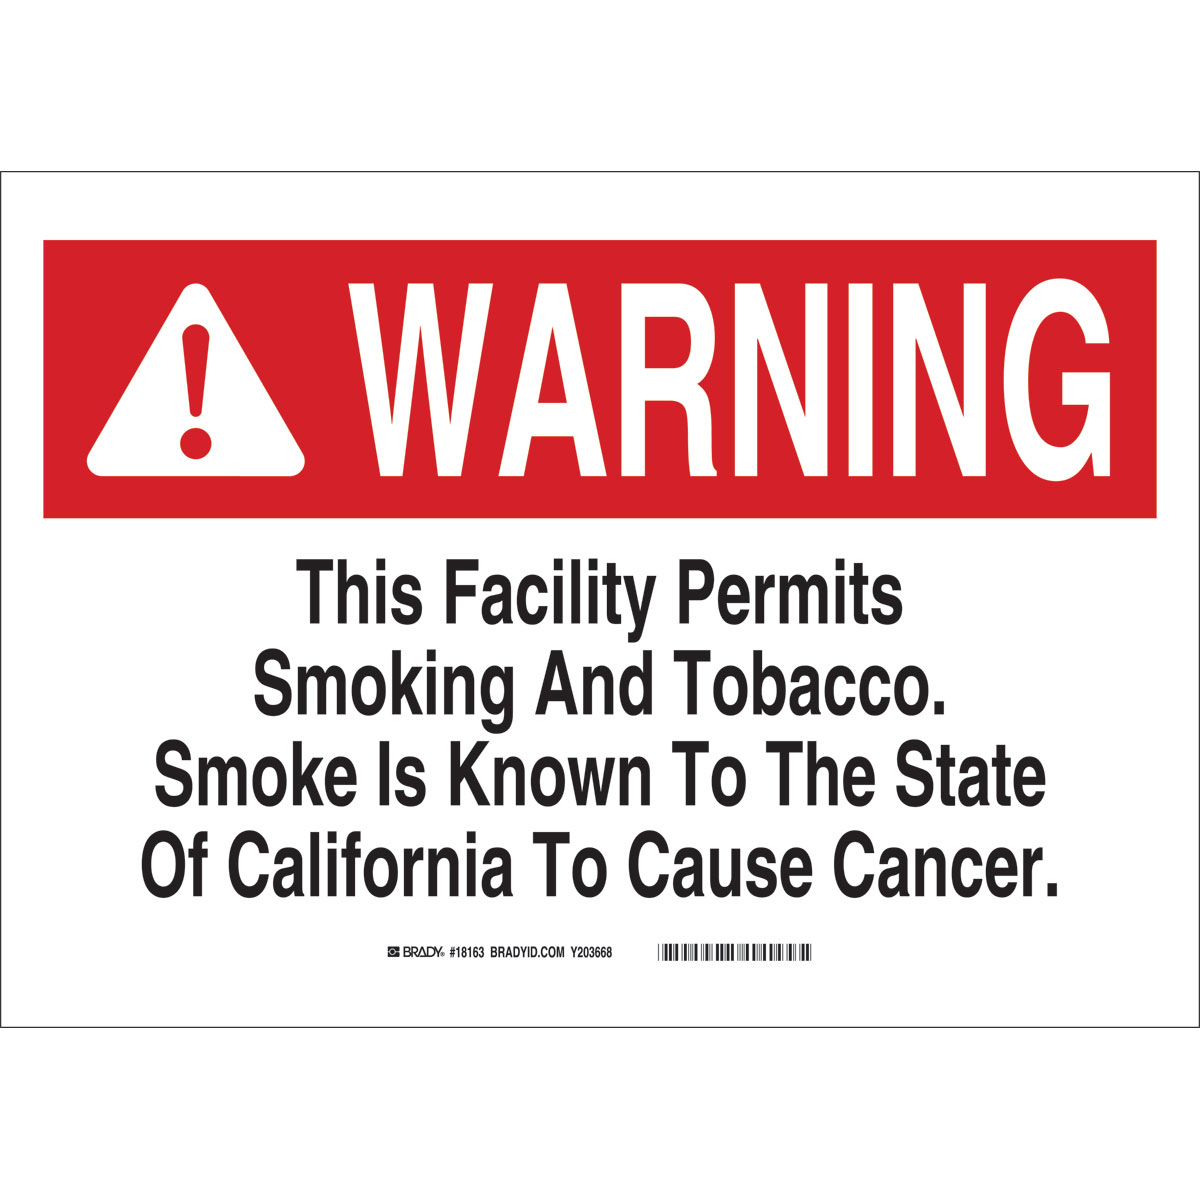 brady part 18163 warning this facility permits smoking and